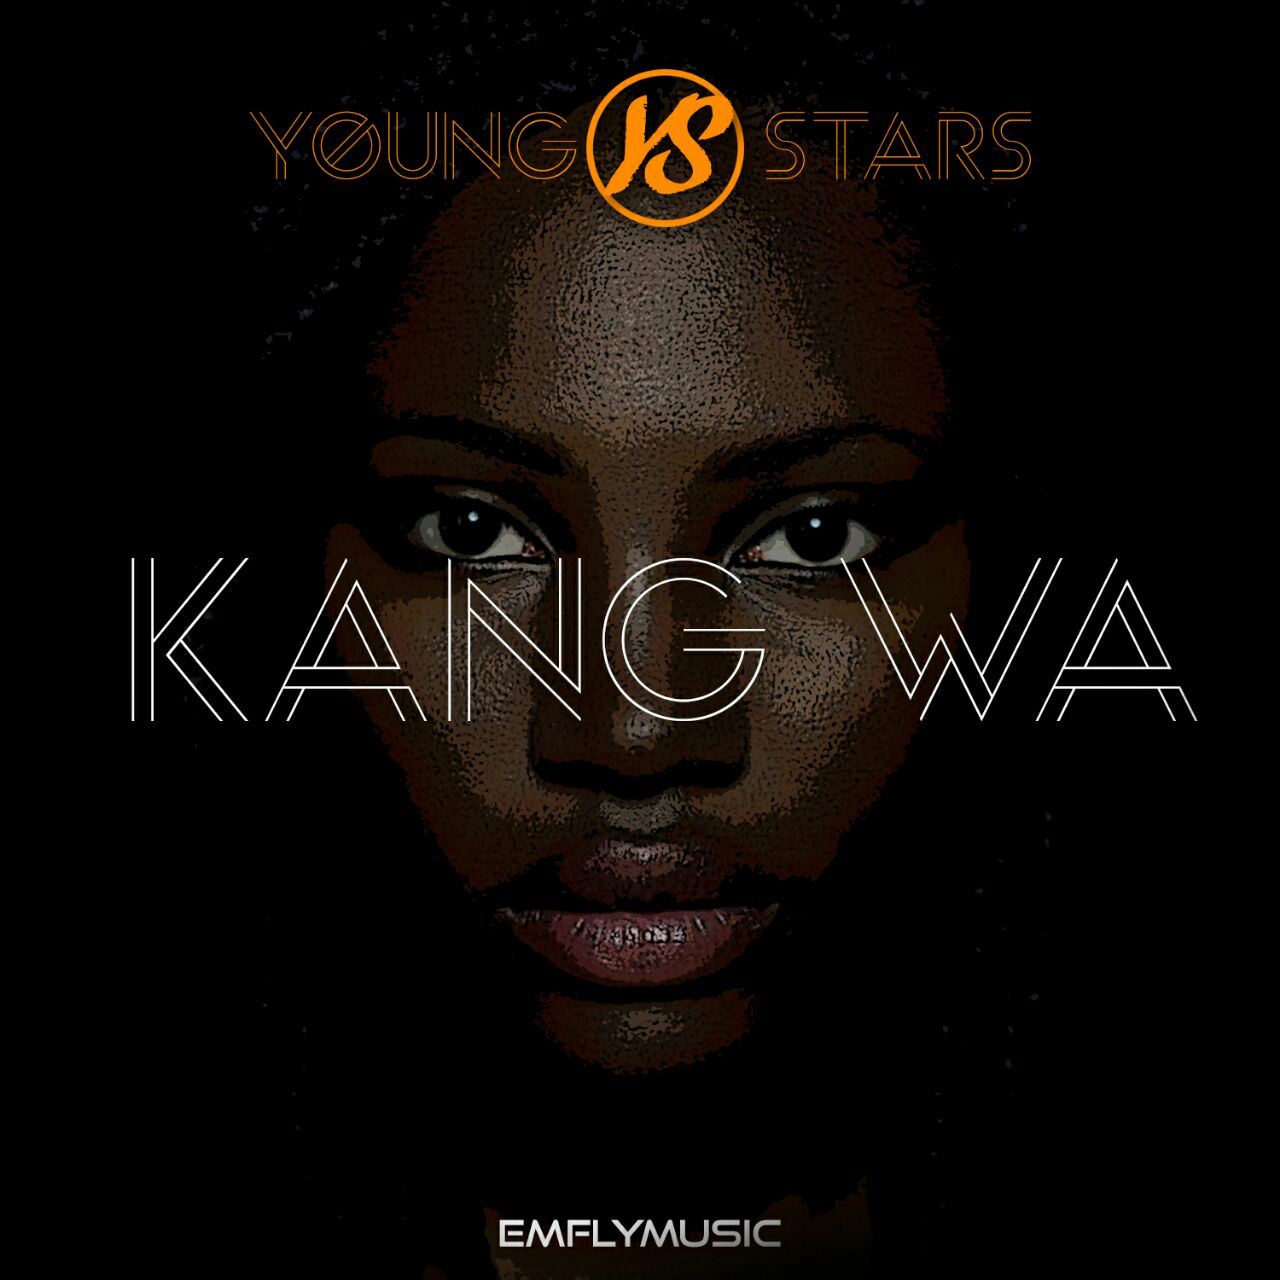 YOUNGSTARS - KANG WAH